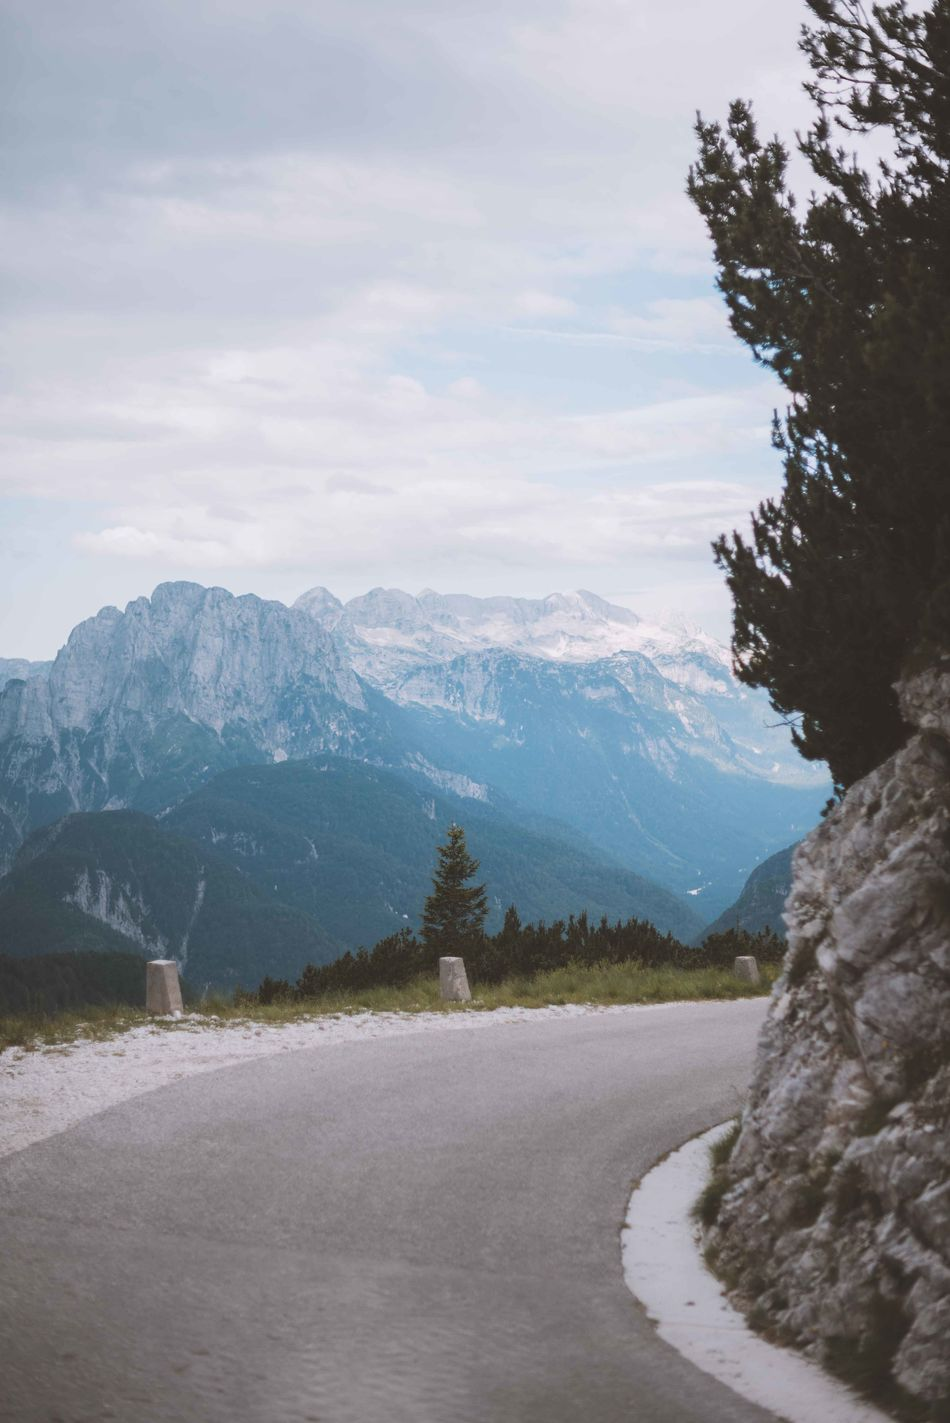 Beauty In Nature Day Landscape Mountain Mountain Range Mountain Road Nature No People Outdoors Road Scenics Sky